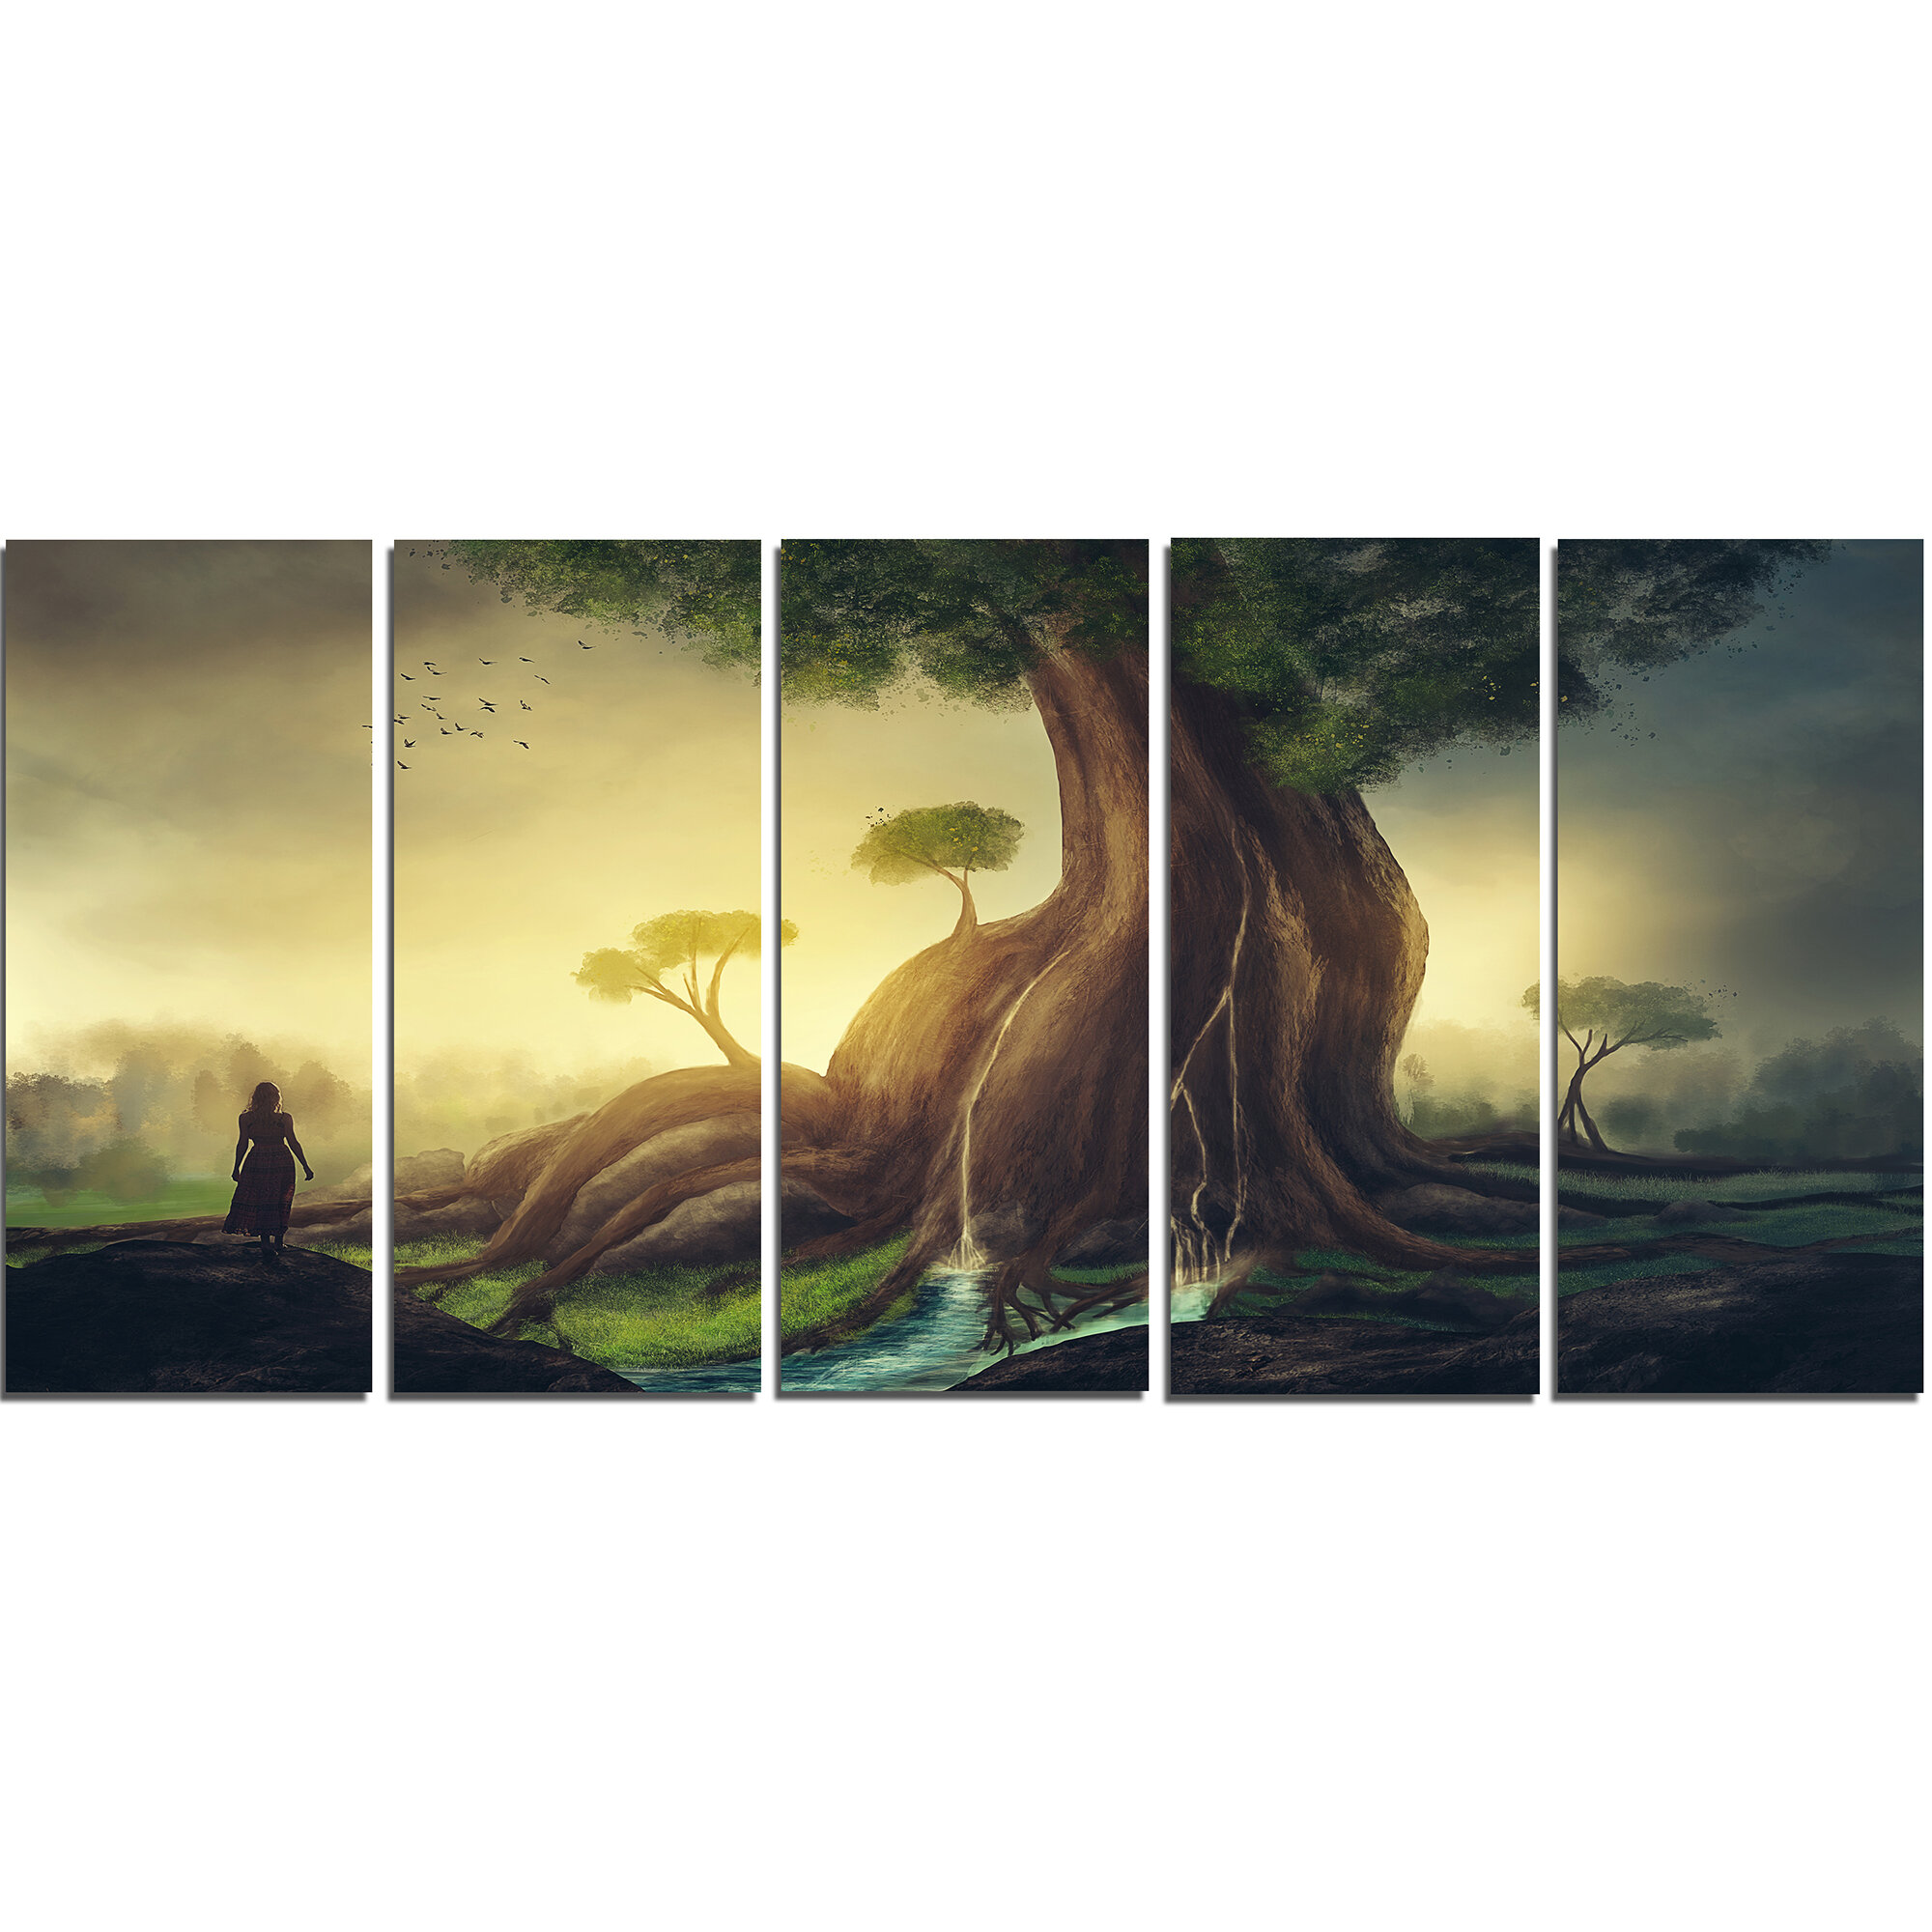 DesignArt Giant Tree with Woman 5 Piece Wall Art on Wrapped Canvas ...